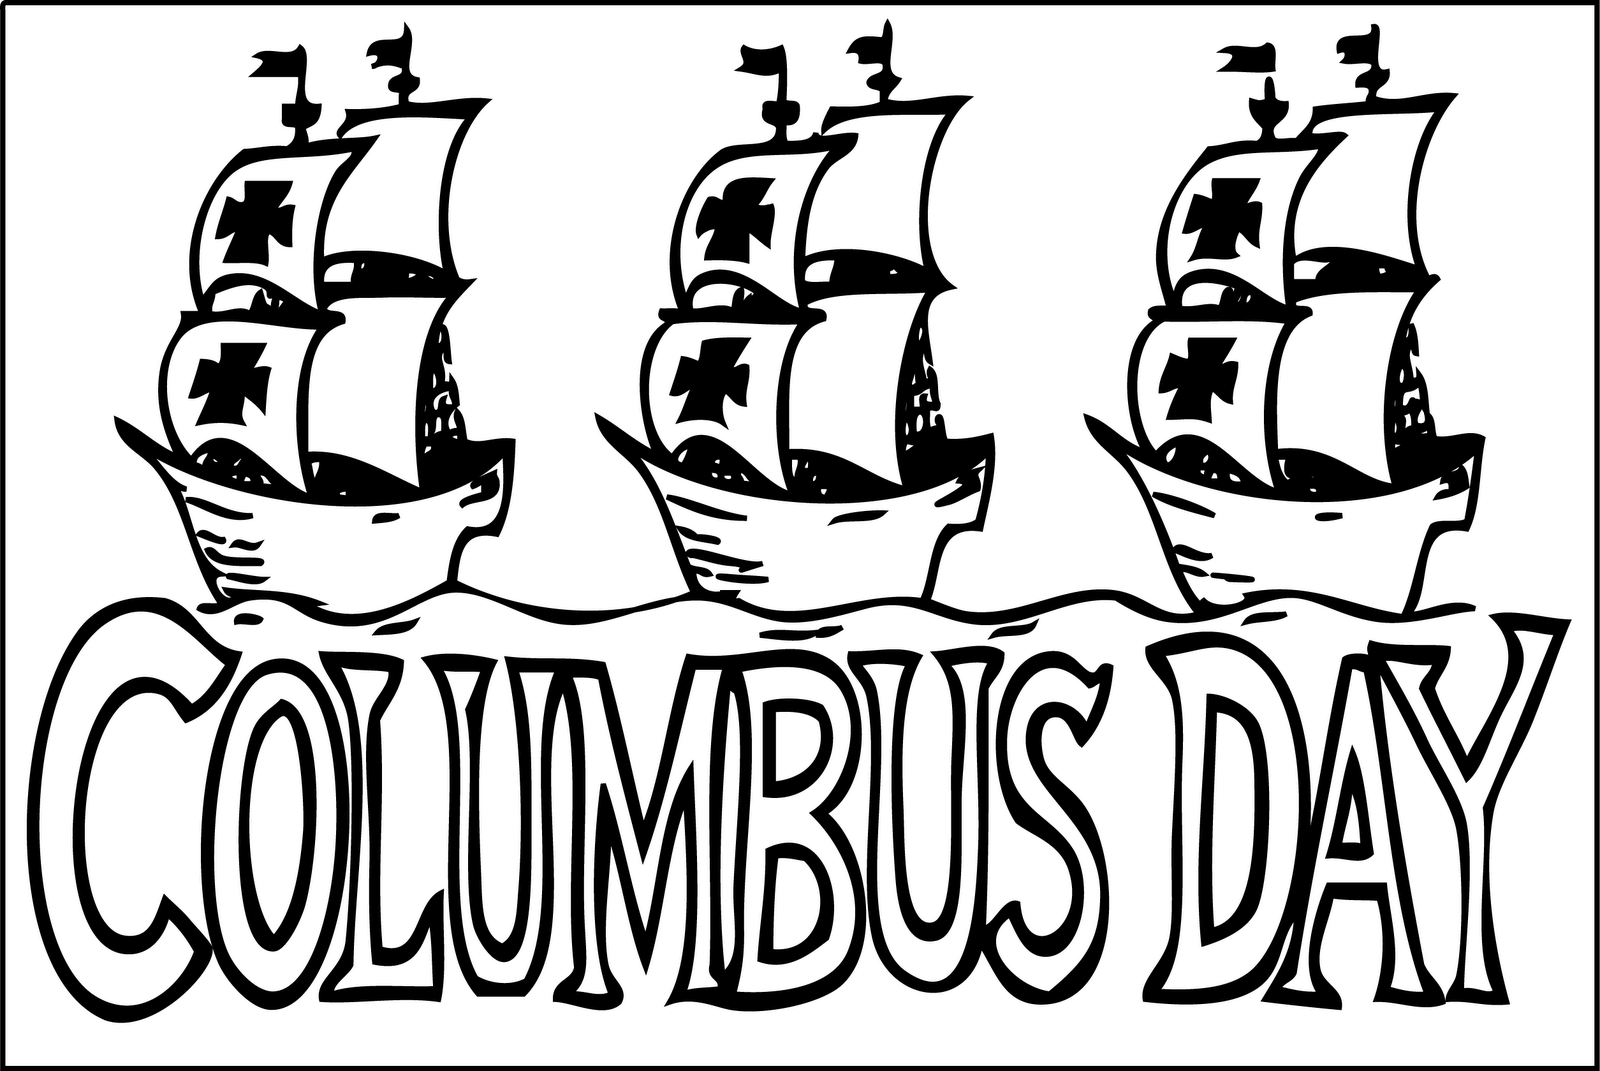 columbus day cartoons